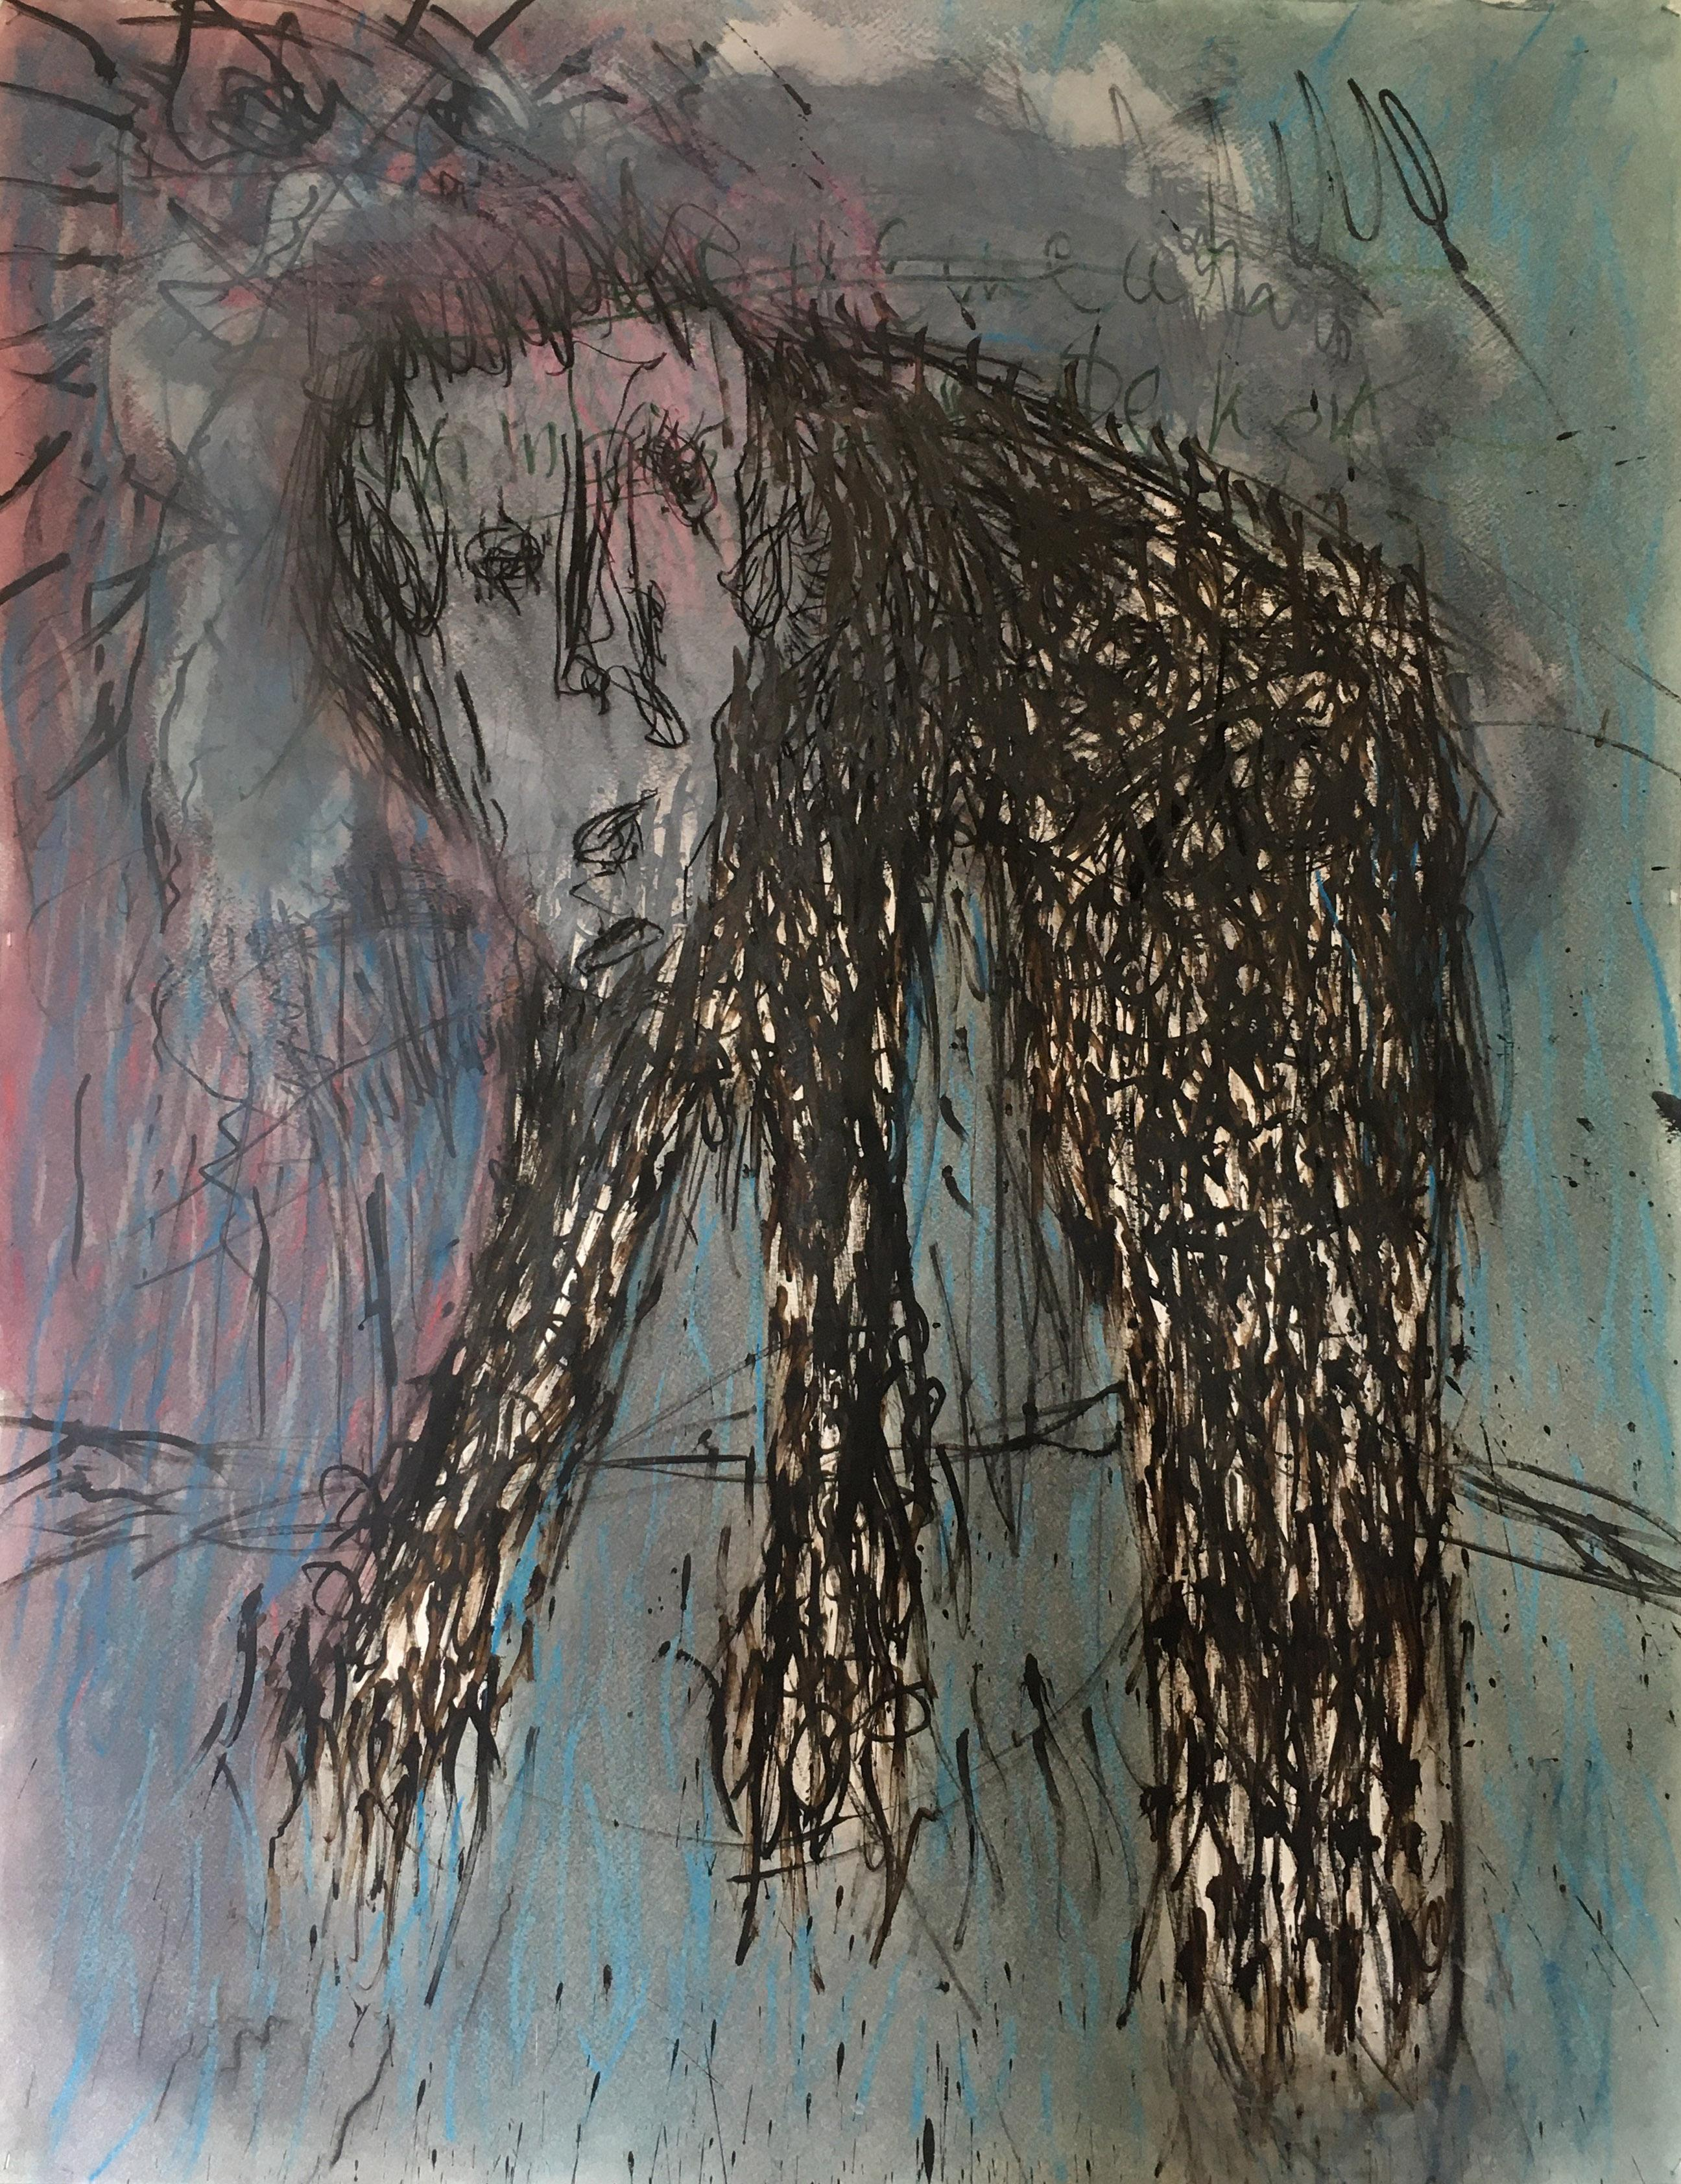 Patrick's cave - Julien Wolf, 21st Century, Contemporary Expressionist Drawing